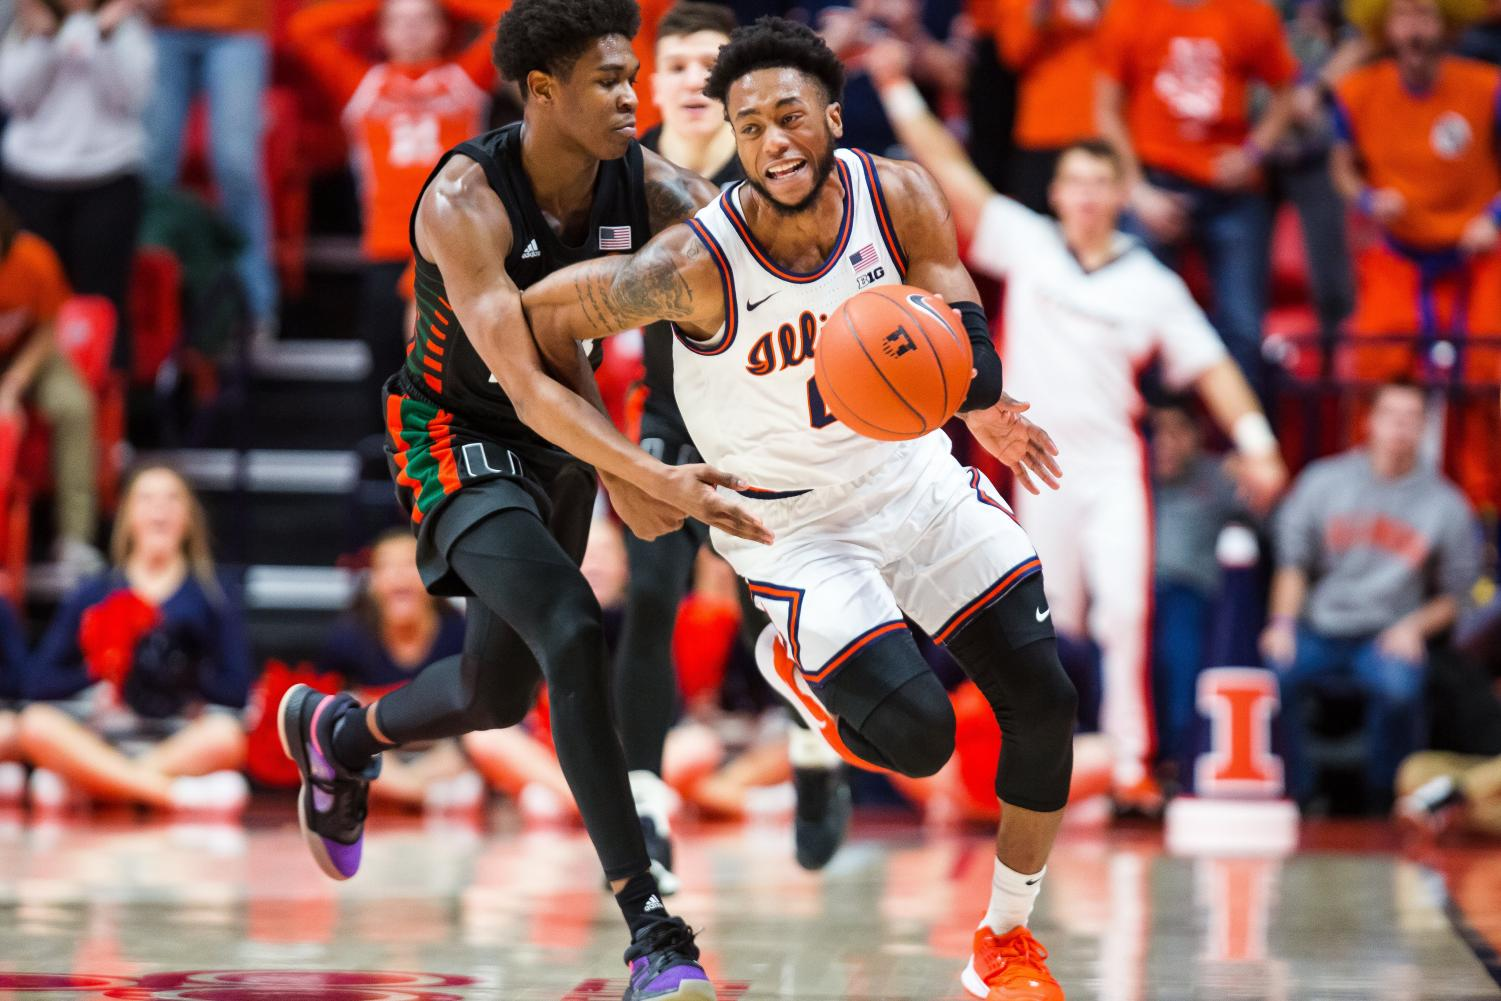 Sophomore guard Alan Griffin dribbles past a Miami player during the Illinis' game against the Hurricanes Monday night in the ACC/Big Ten Challenge. Illinois narrowly lost 81-79, and moves to 6-2 on the season overall. Captured at State Farm Center on 02 Dec. 2019 by Jonathan Bonaguro.